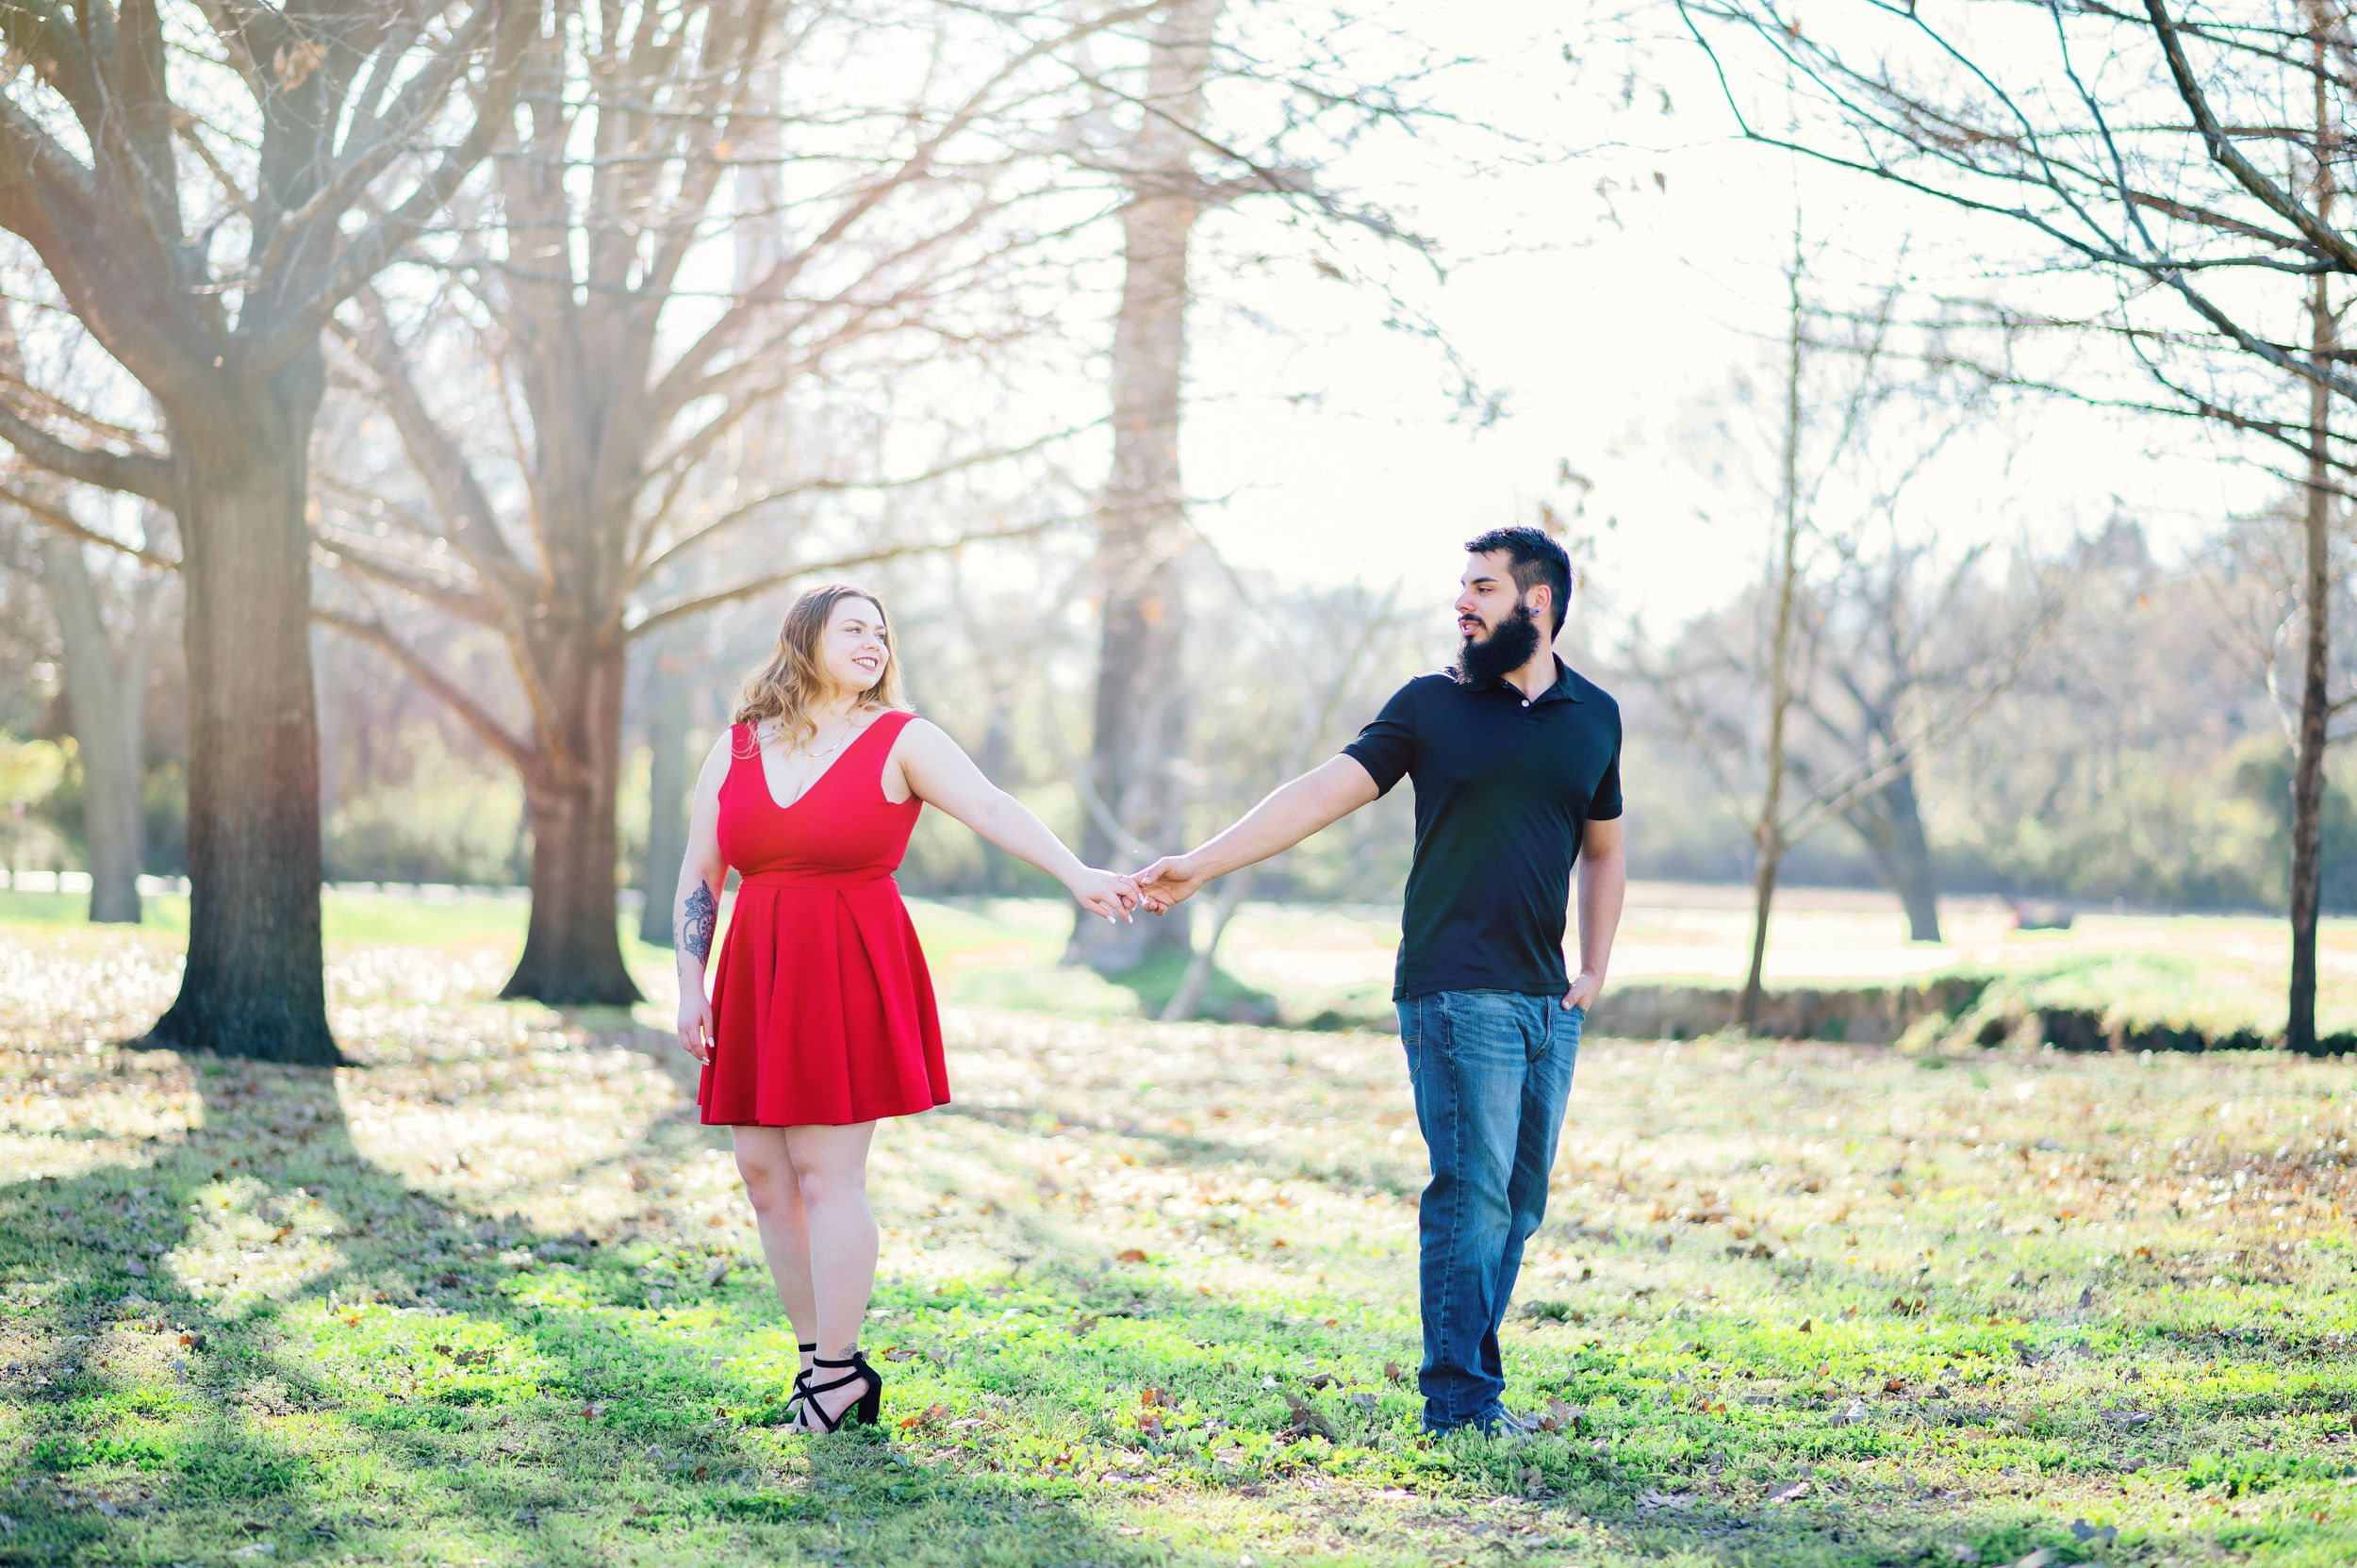 Engagement photo at White rock park dallas